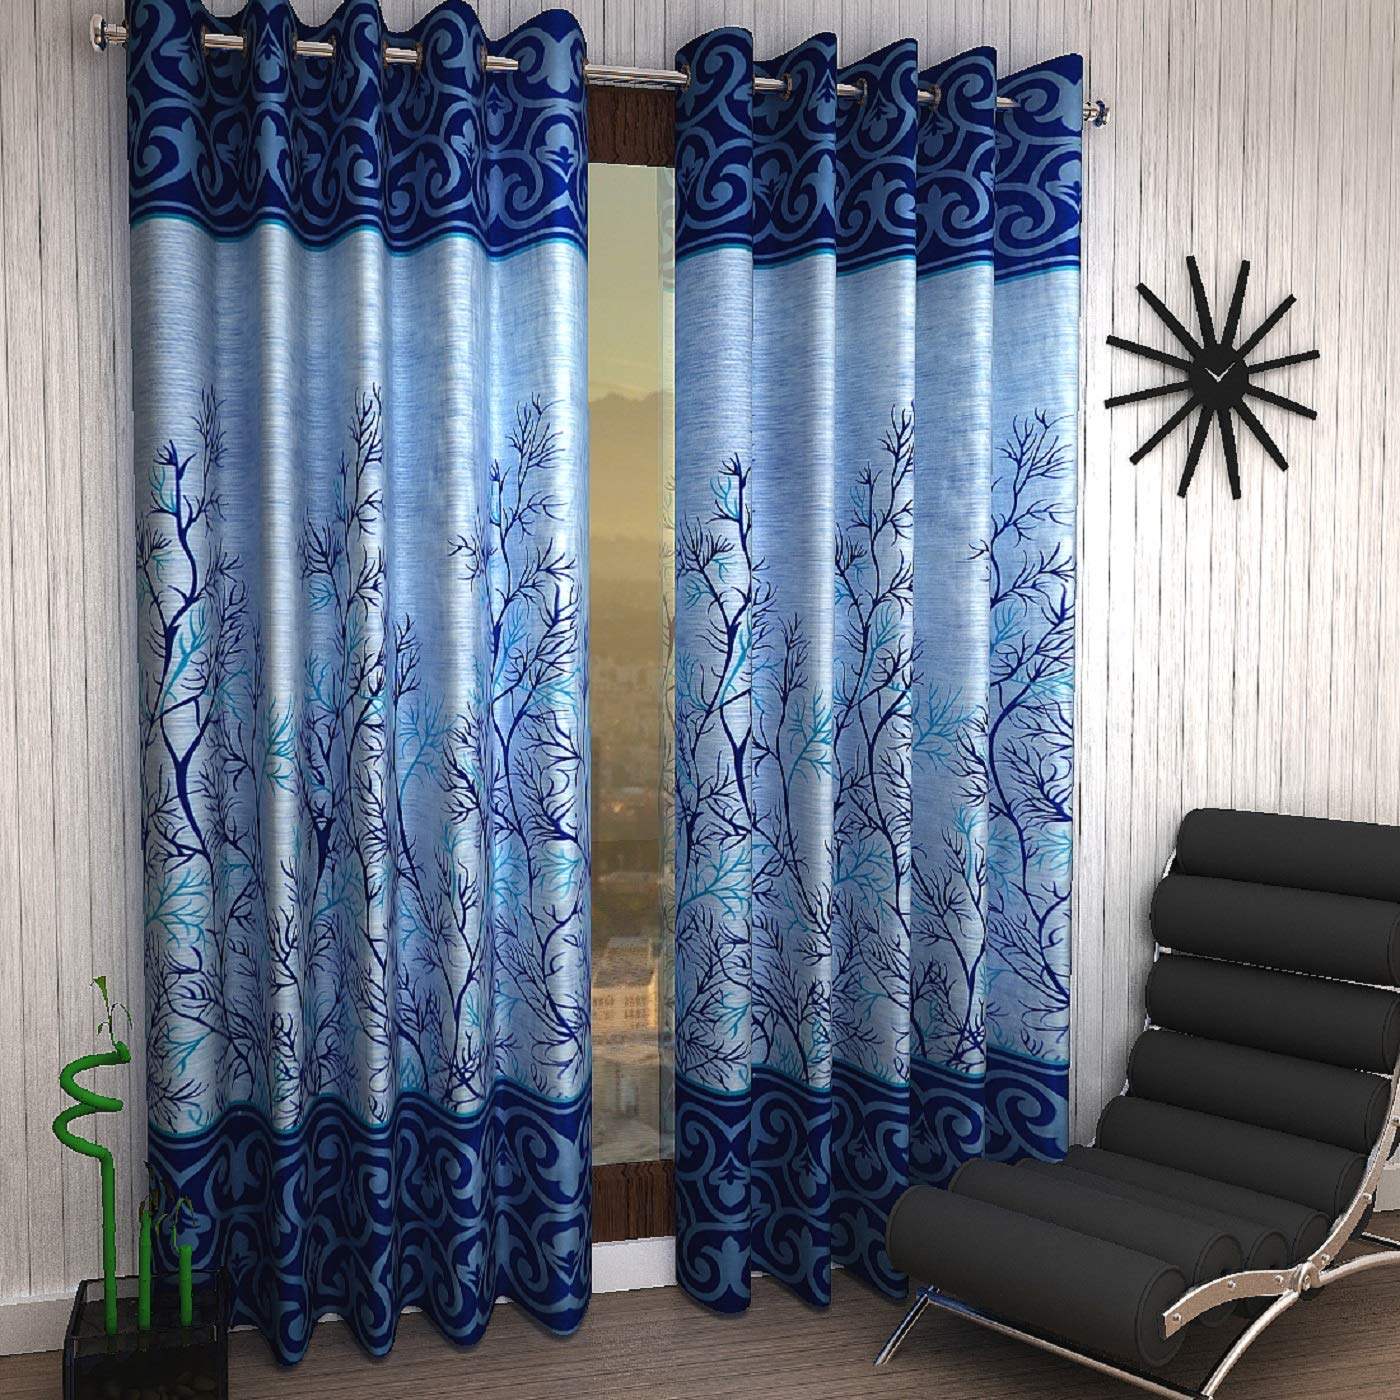 Home Sizzler 2 Piece Eyelet Polyester Door Curtain - 7ft, Blue